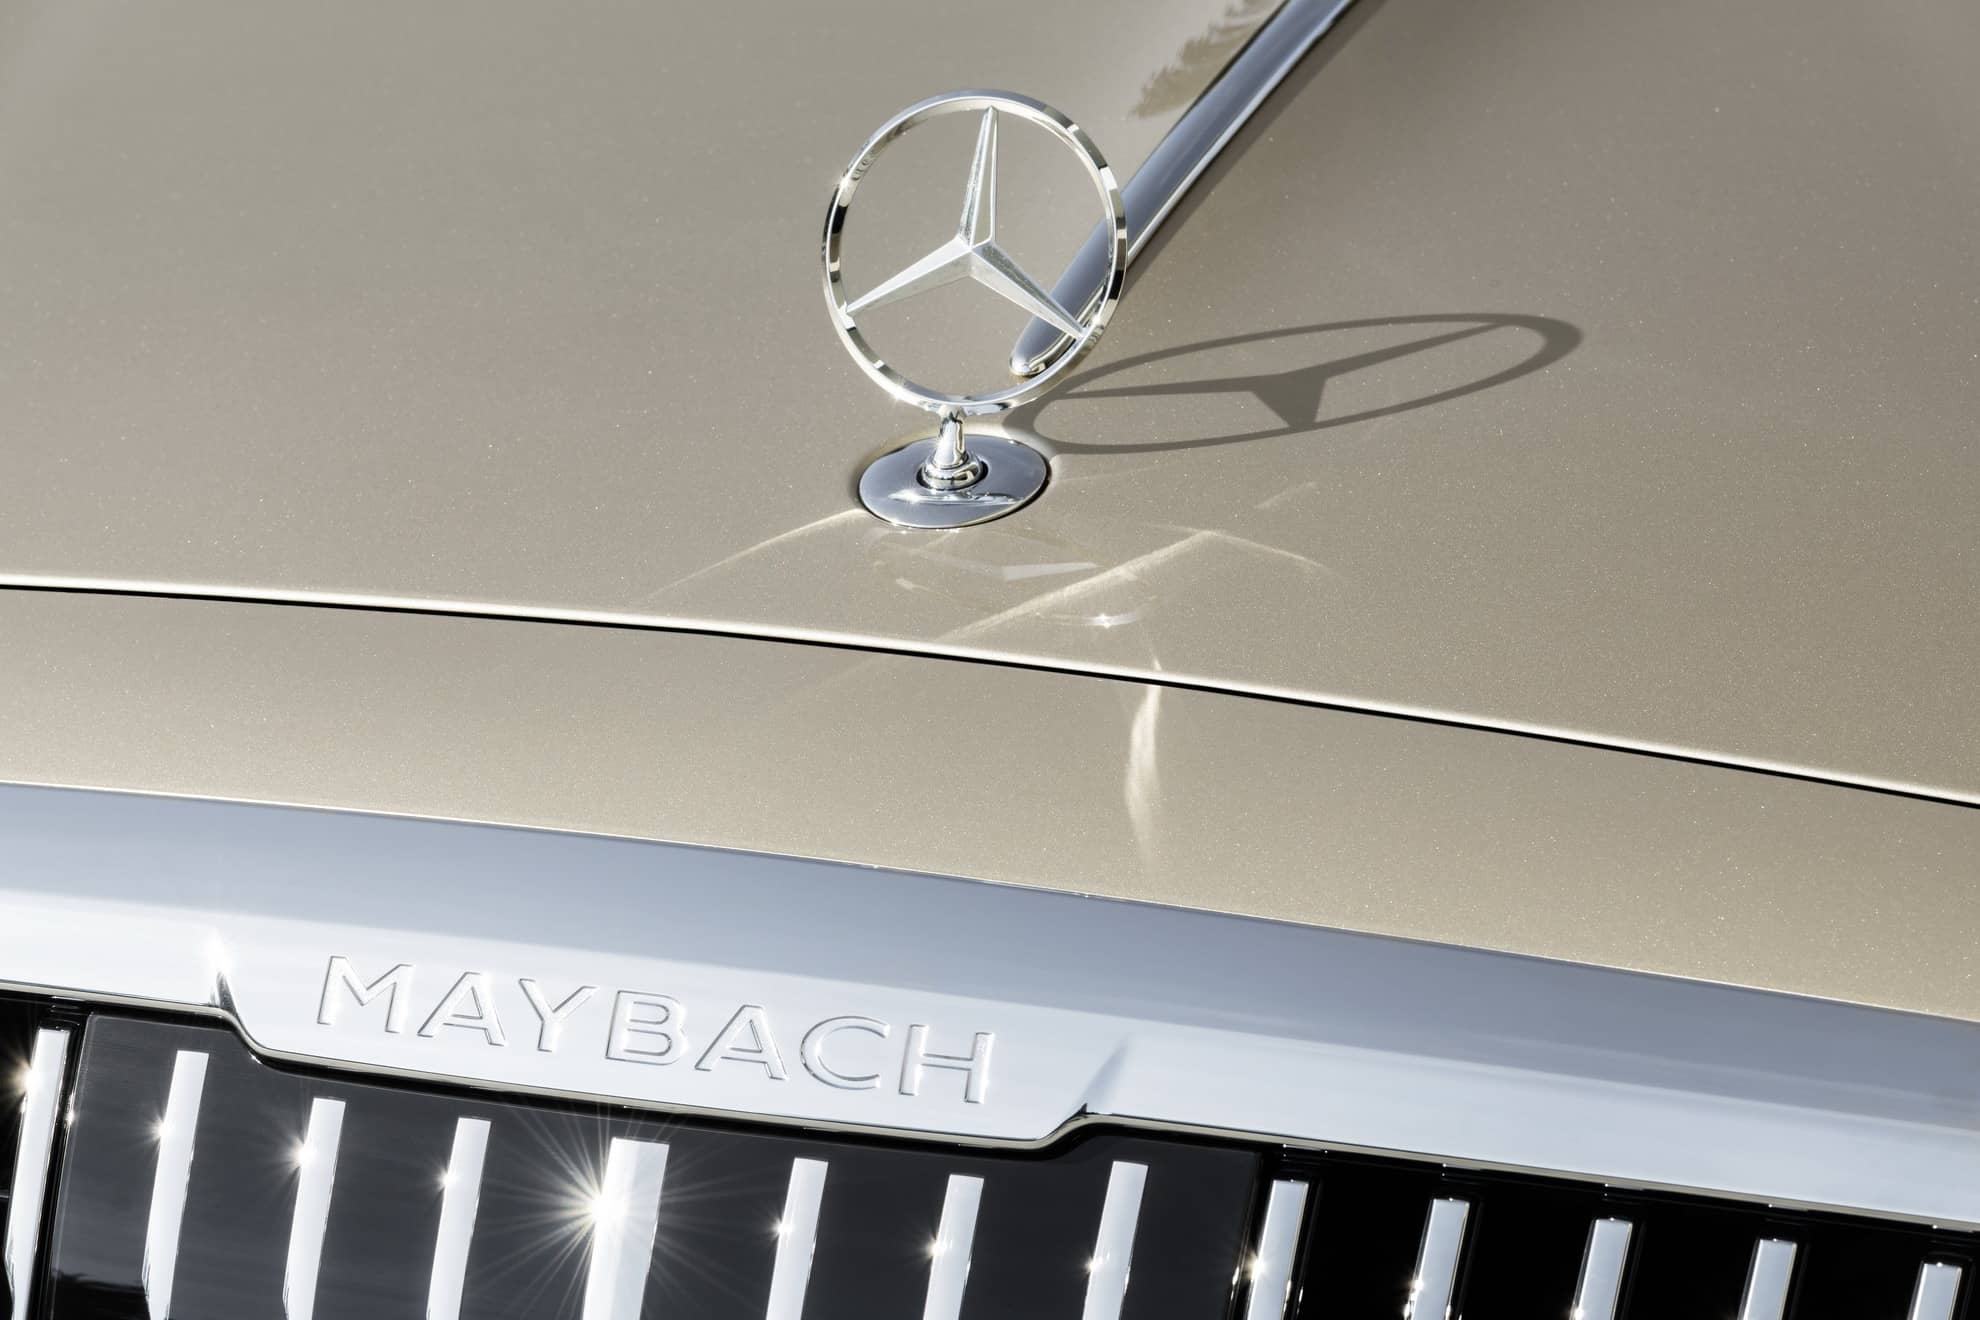 mercedes-mabych s (8)